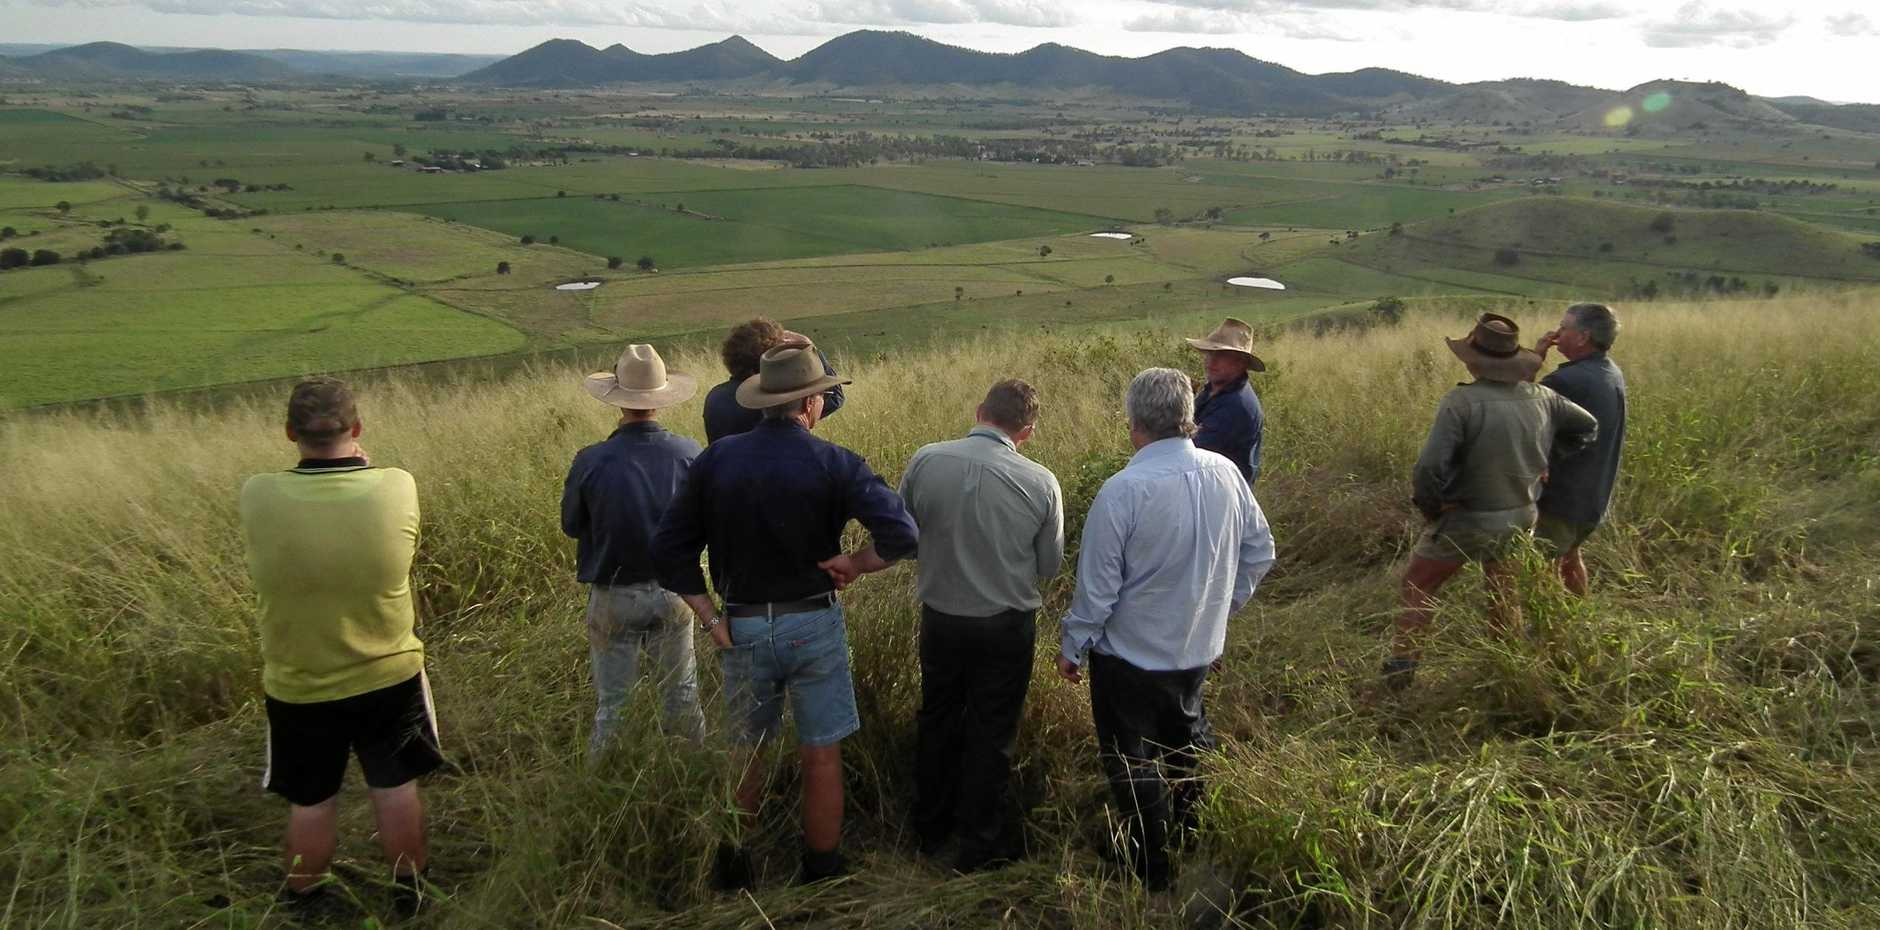 JUST ADD WATER: Coalstoun Lakes farmers with Member for Flynn Ken O'Dowd look down on the valley that would benefit from a regular supply of water.